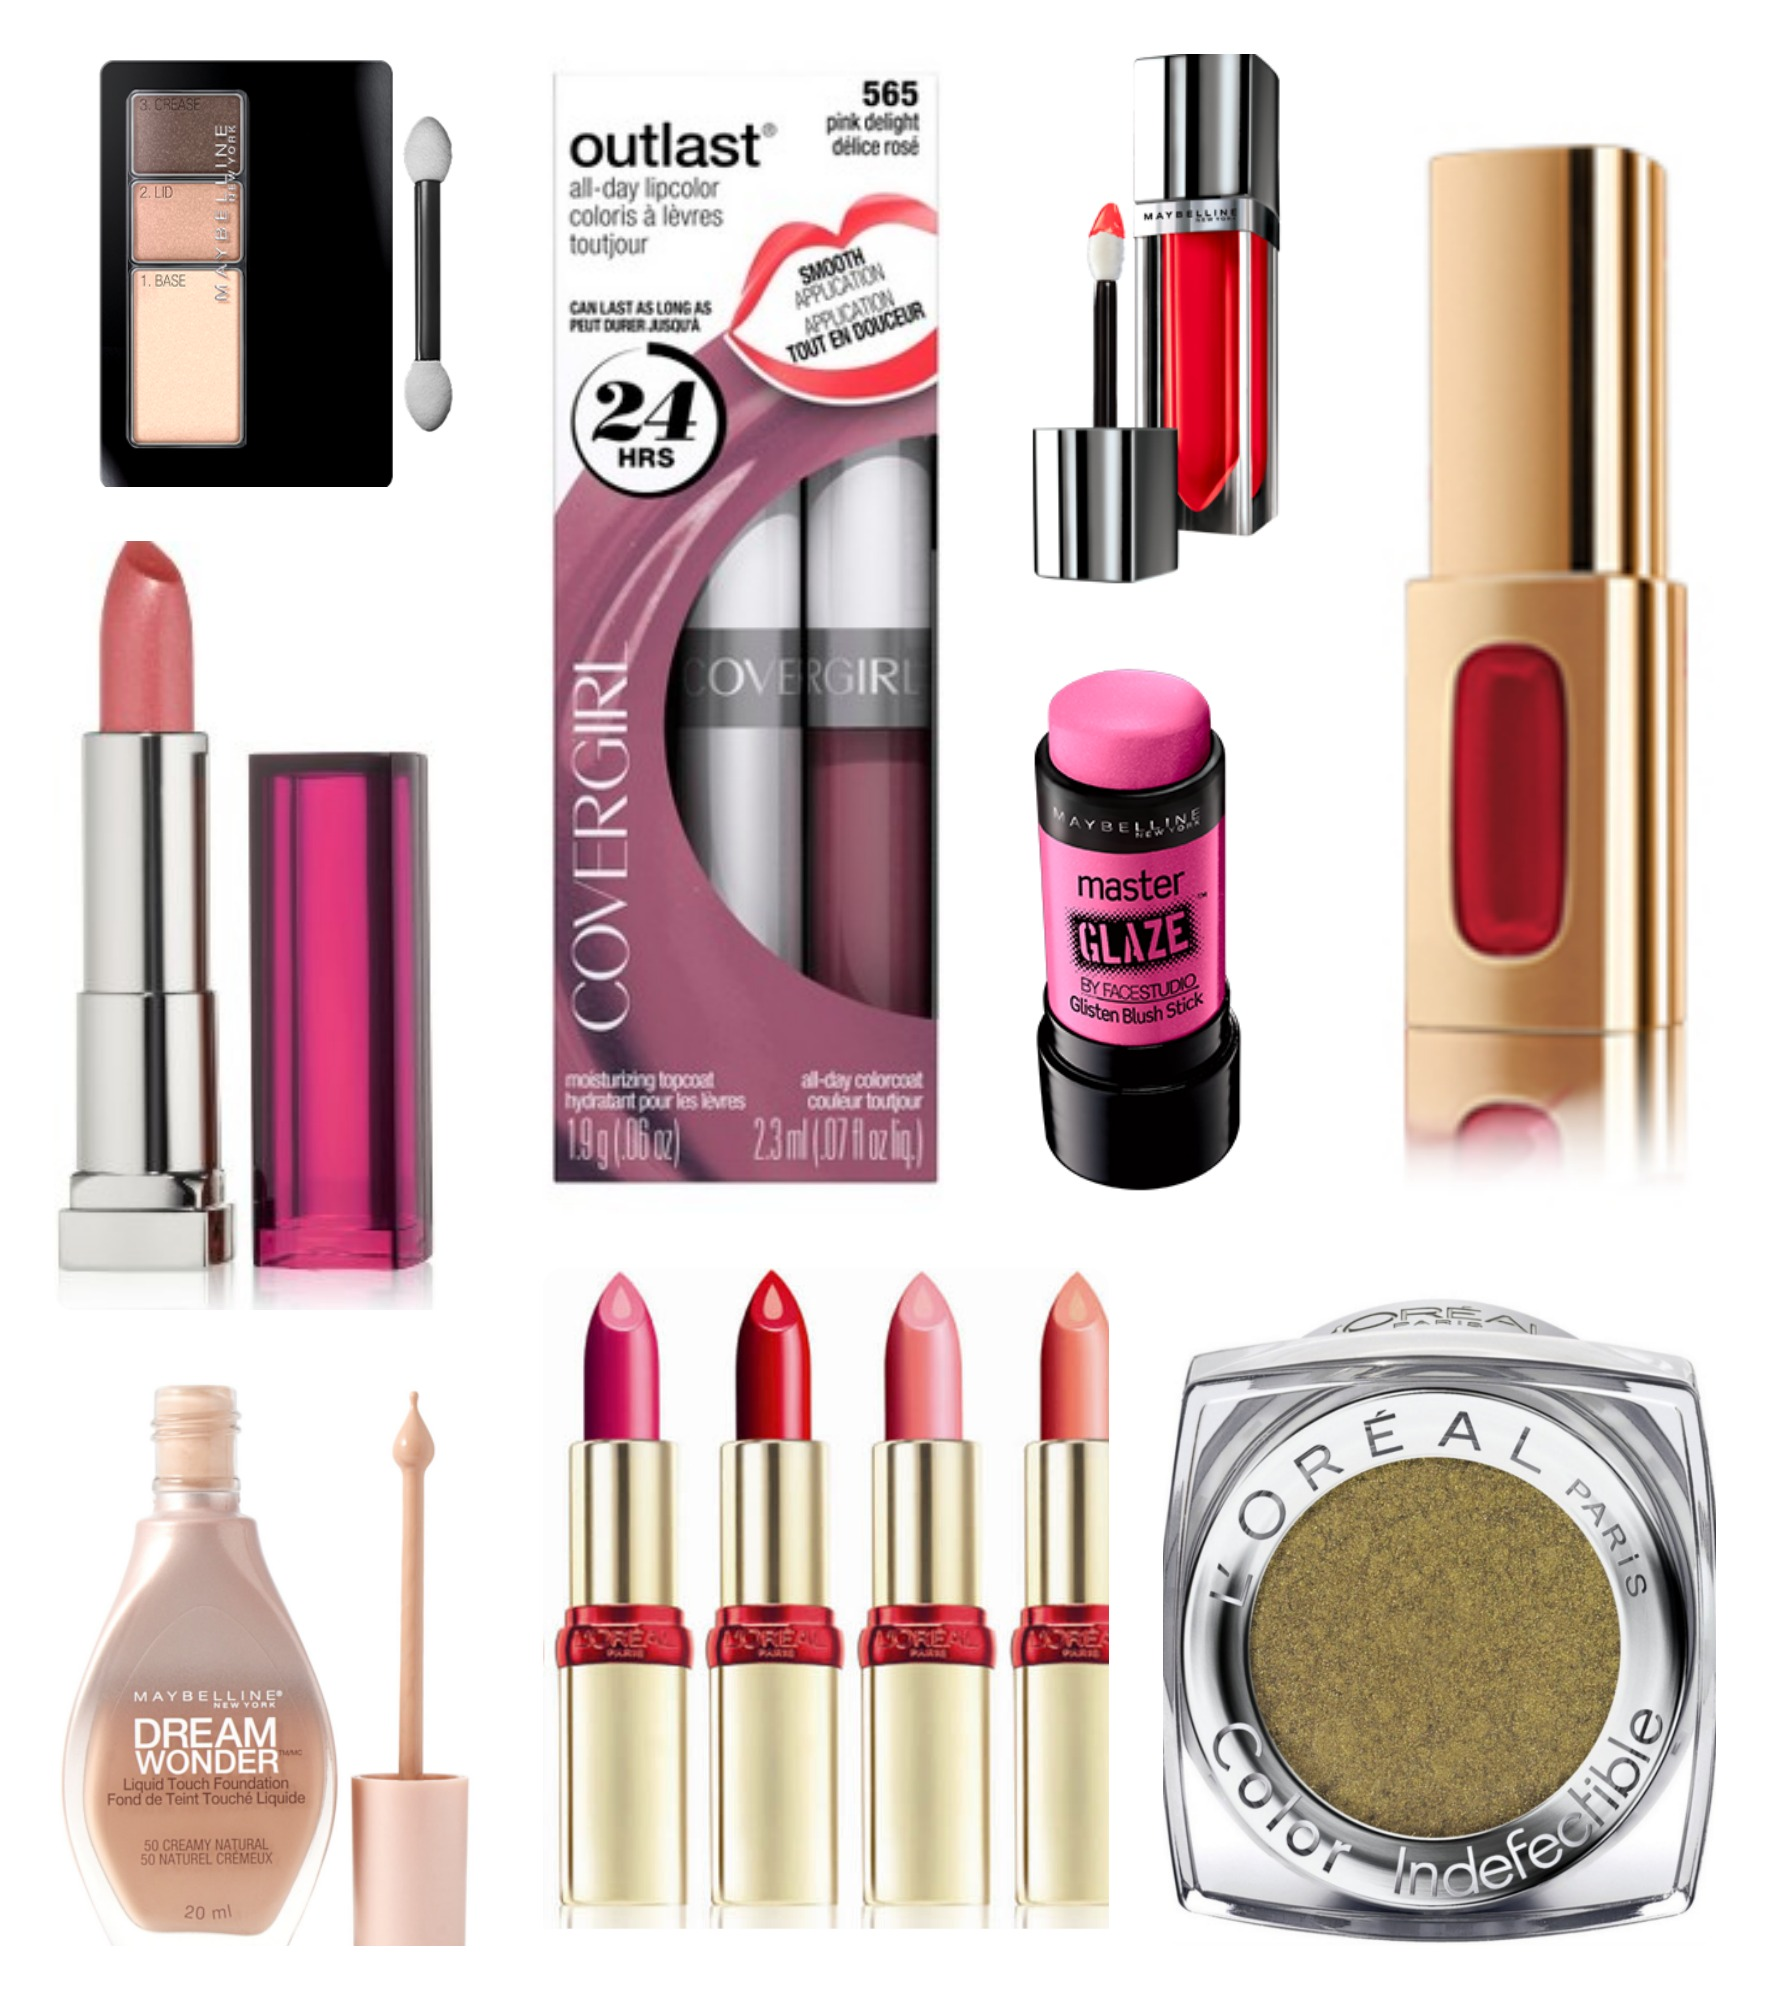 Get Them Before They're Gone: Drugstore Products On Their Way Out (Part 2)